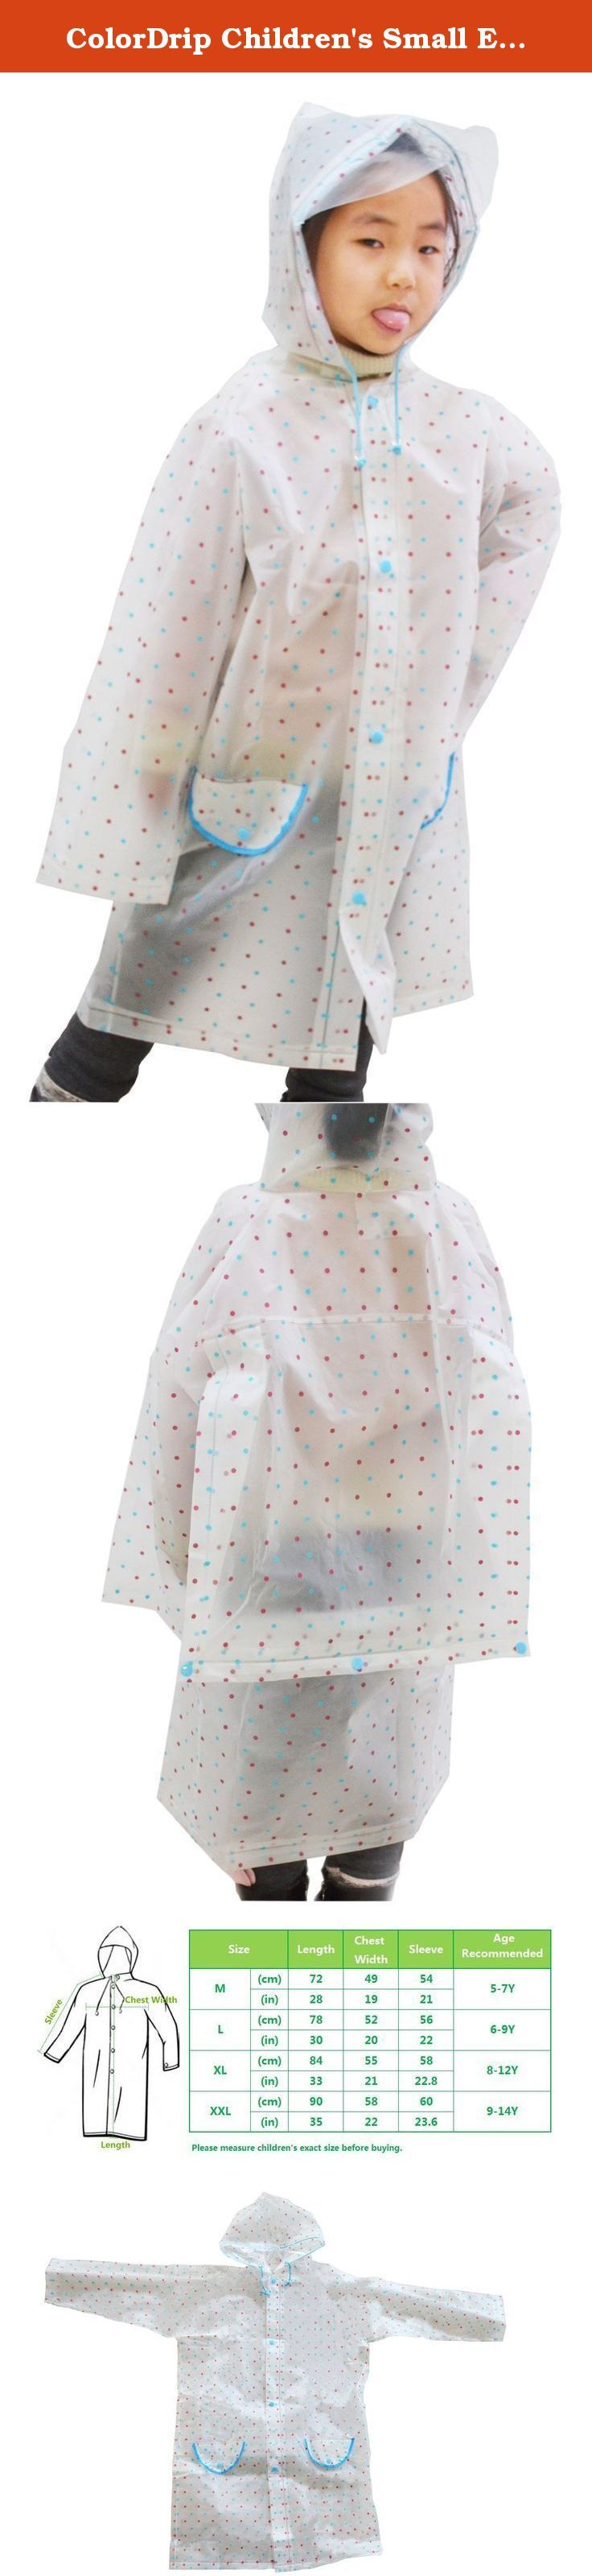 ColorDrip Children's Small Ear Pocket Dots Eco-friendly EVA Children Raincoat Large White. *Made of special EVA, all-around heartfelt protection for your lovely sweetie; Eco-friendly and soft materials without harmful substance---absolutely skin-friendly and healthy; Excellent waterproof and free breathability---prevention from wetting in the rain comfortably; Low temperature-resistant and anti-tearing---windproof and durable even in the chilly winter; Light and crease-resistant---easy…